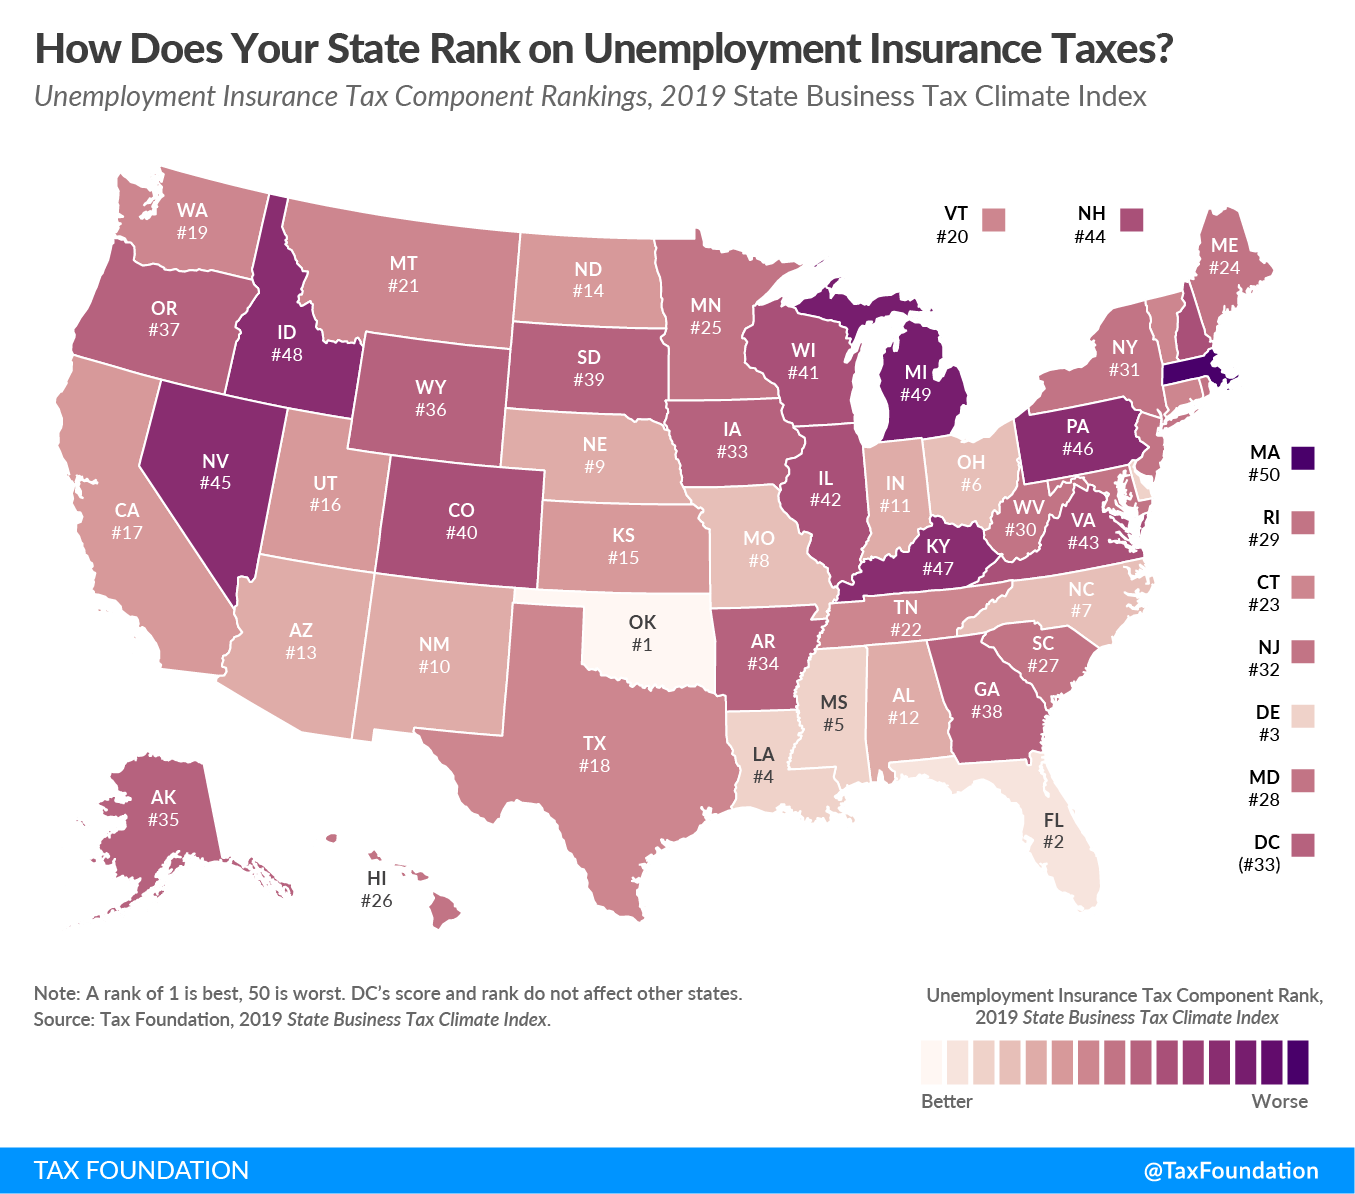 Ranking Unemployment Insurance Taxes on the 2019 State Business Tax Climate Index